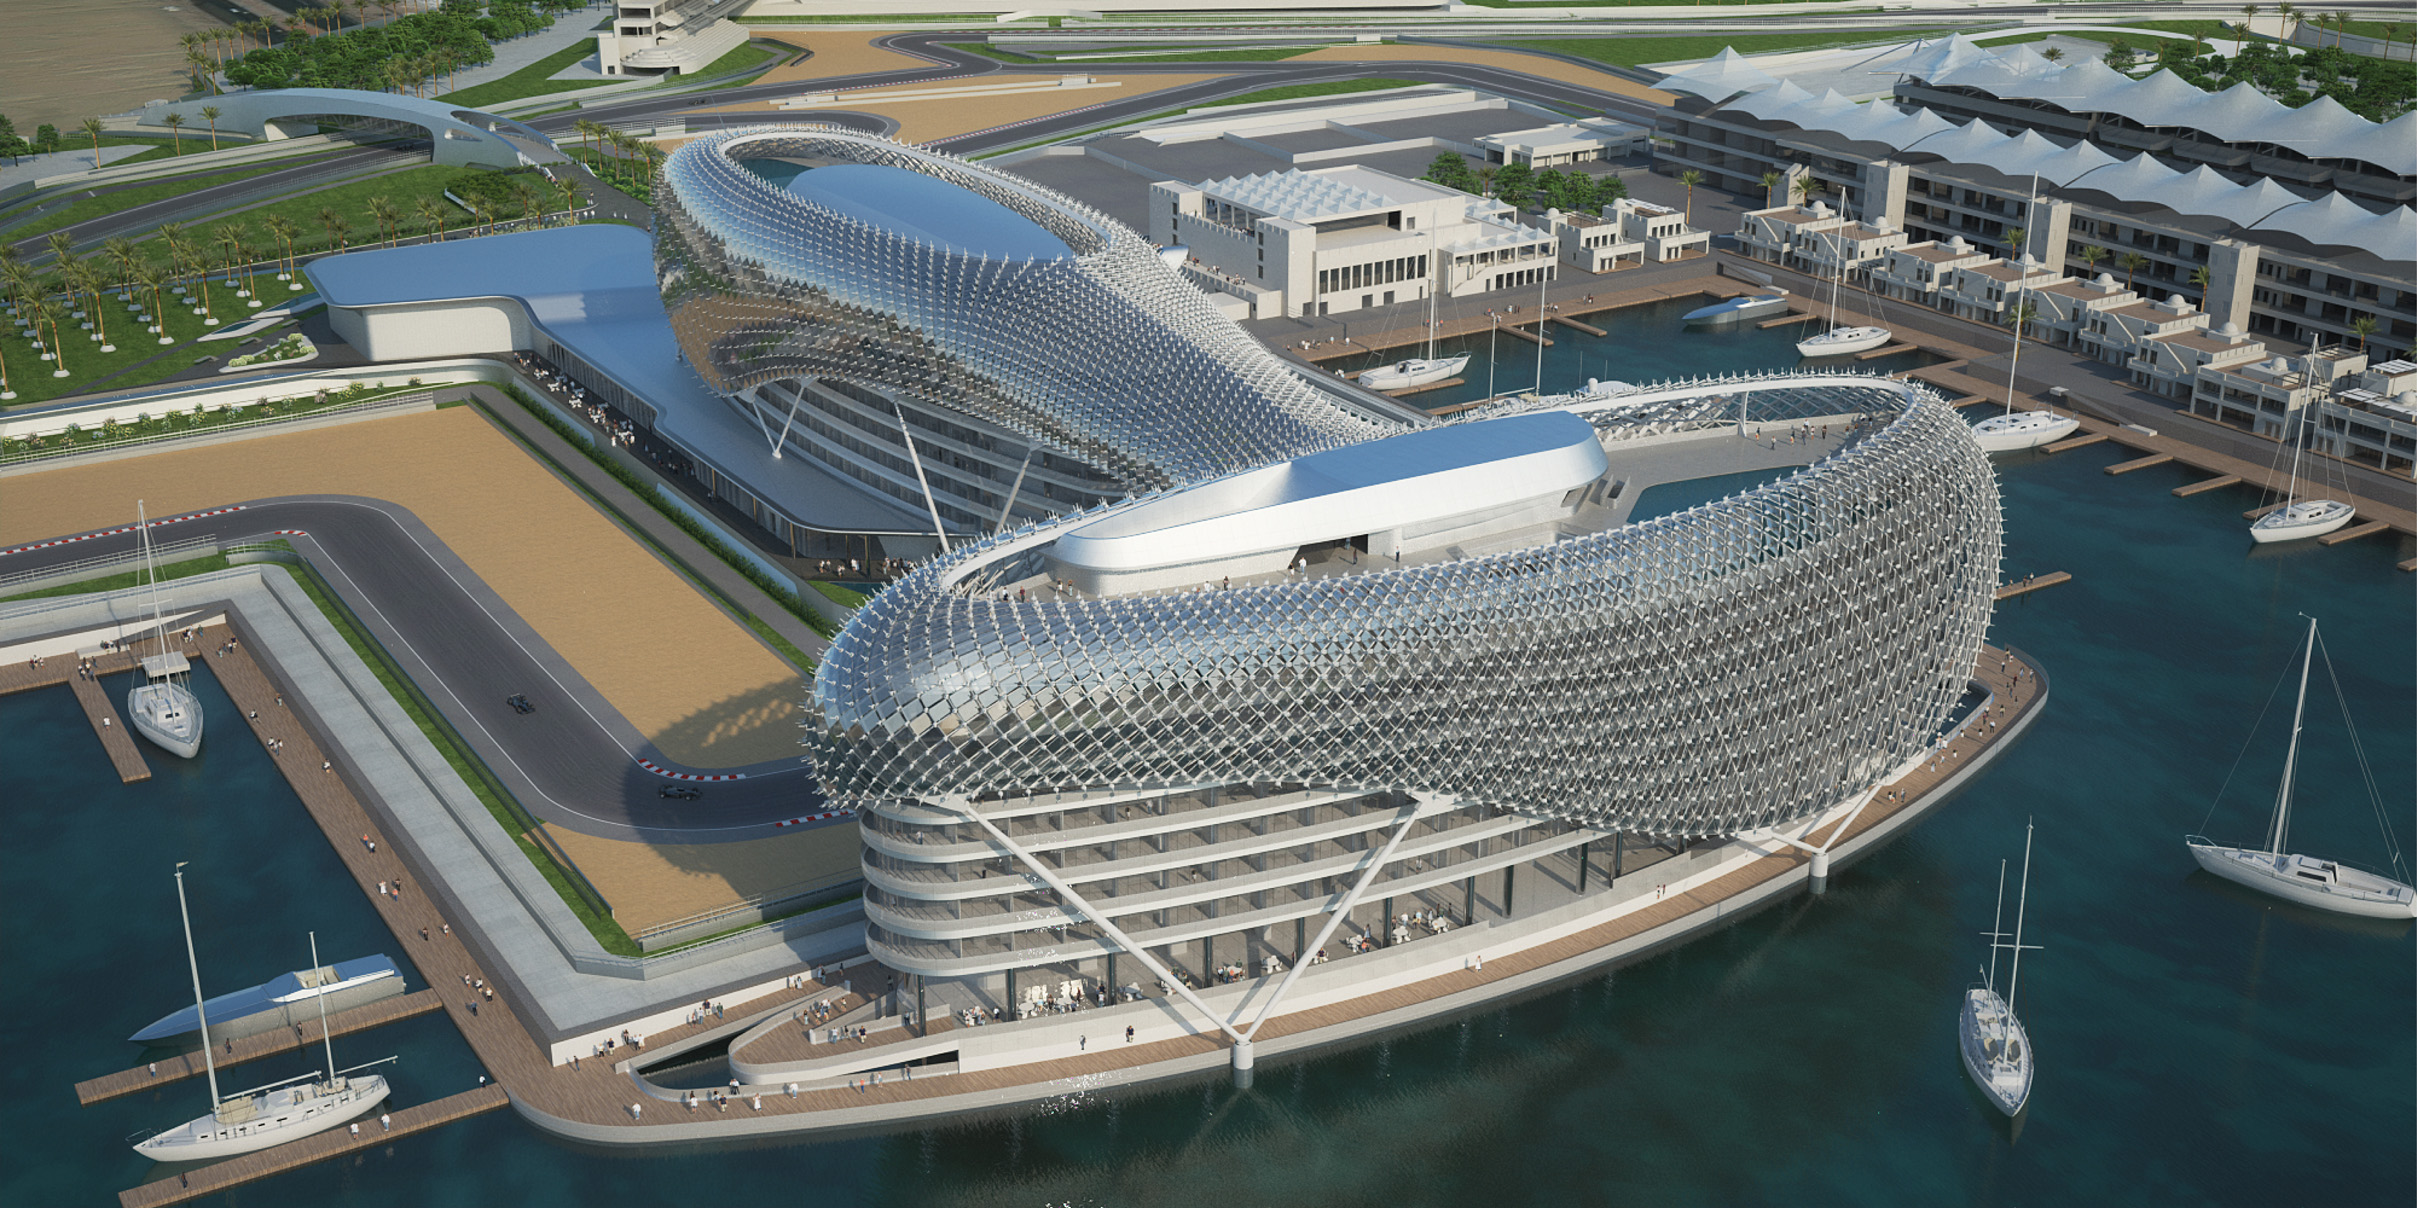 Amazing Construction Built Over F1 Racing Track-Yas Viceroy Abu Dhabi Hotel by Asymptote Architecture Homesthetics